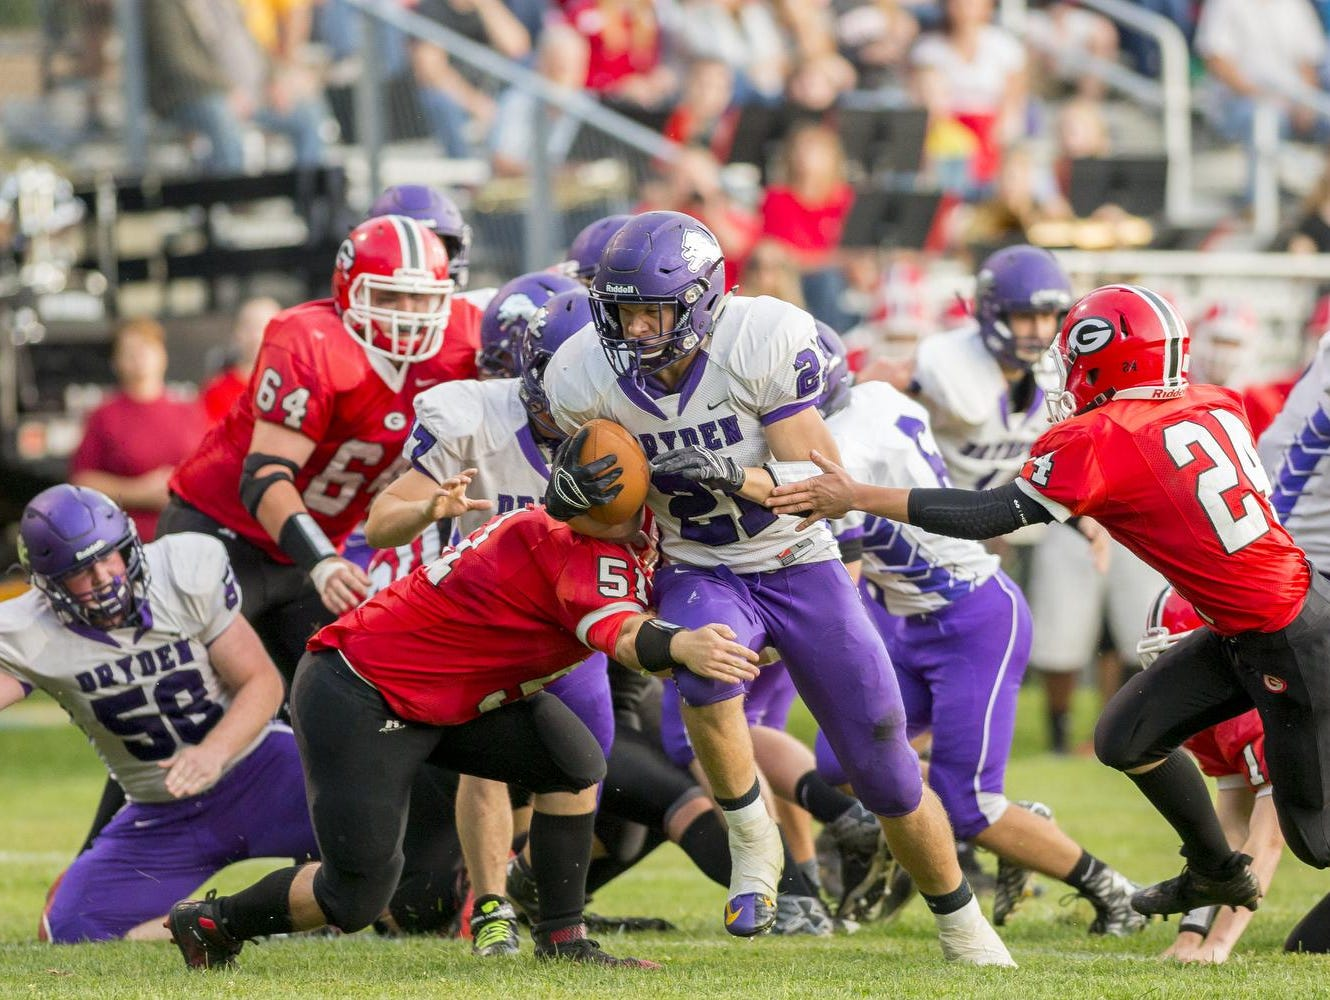 Dryden senior Stu Stahlman, center, breaks free from Groton's Keller Pai, left, and Adam Cronk on his way to scoring Dryden's first touchdown Friday evening at Ross Field in Groton. Stahlman had three touchdowns in the Purple Lions 39-34 defeat of the host Indians.